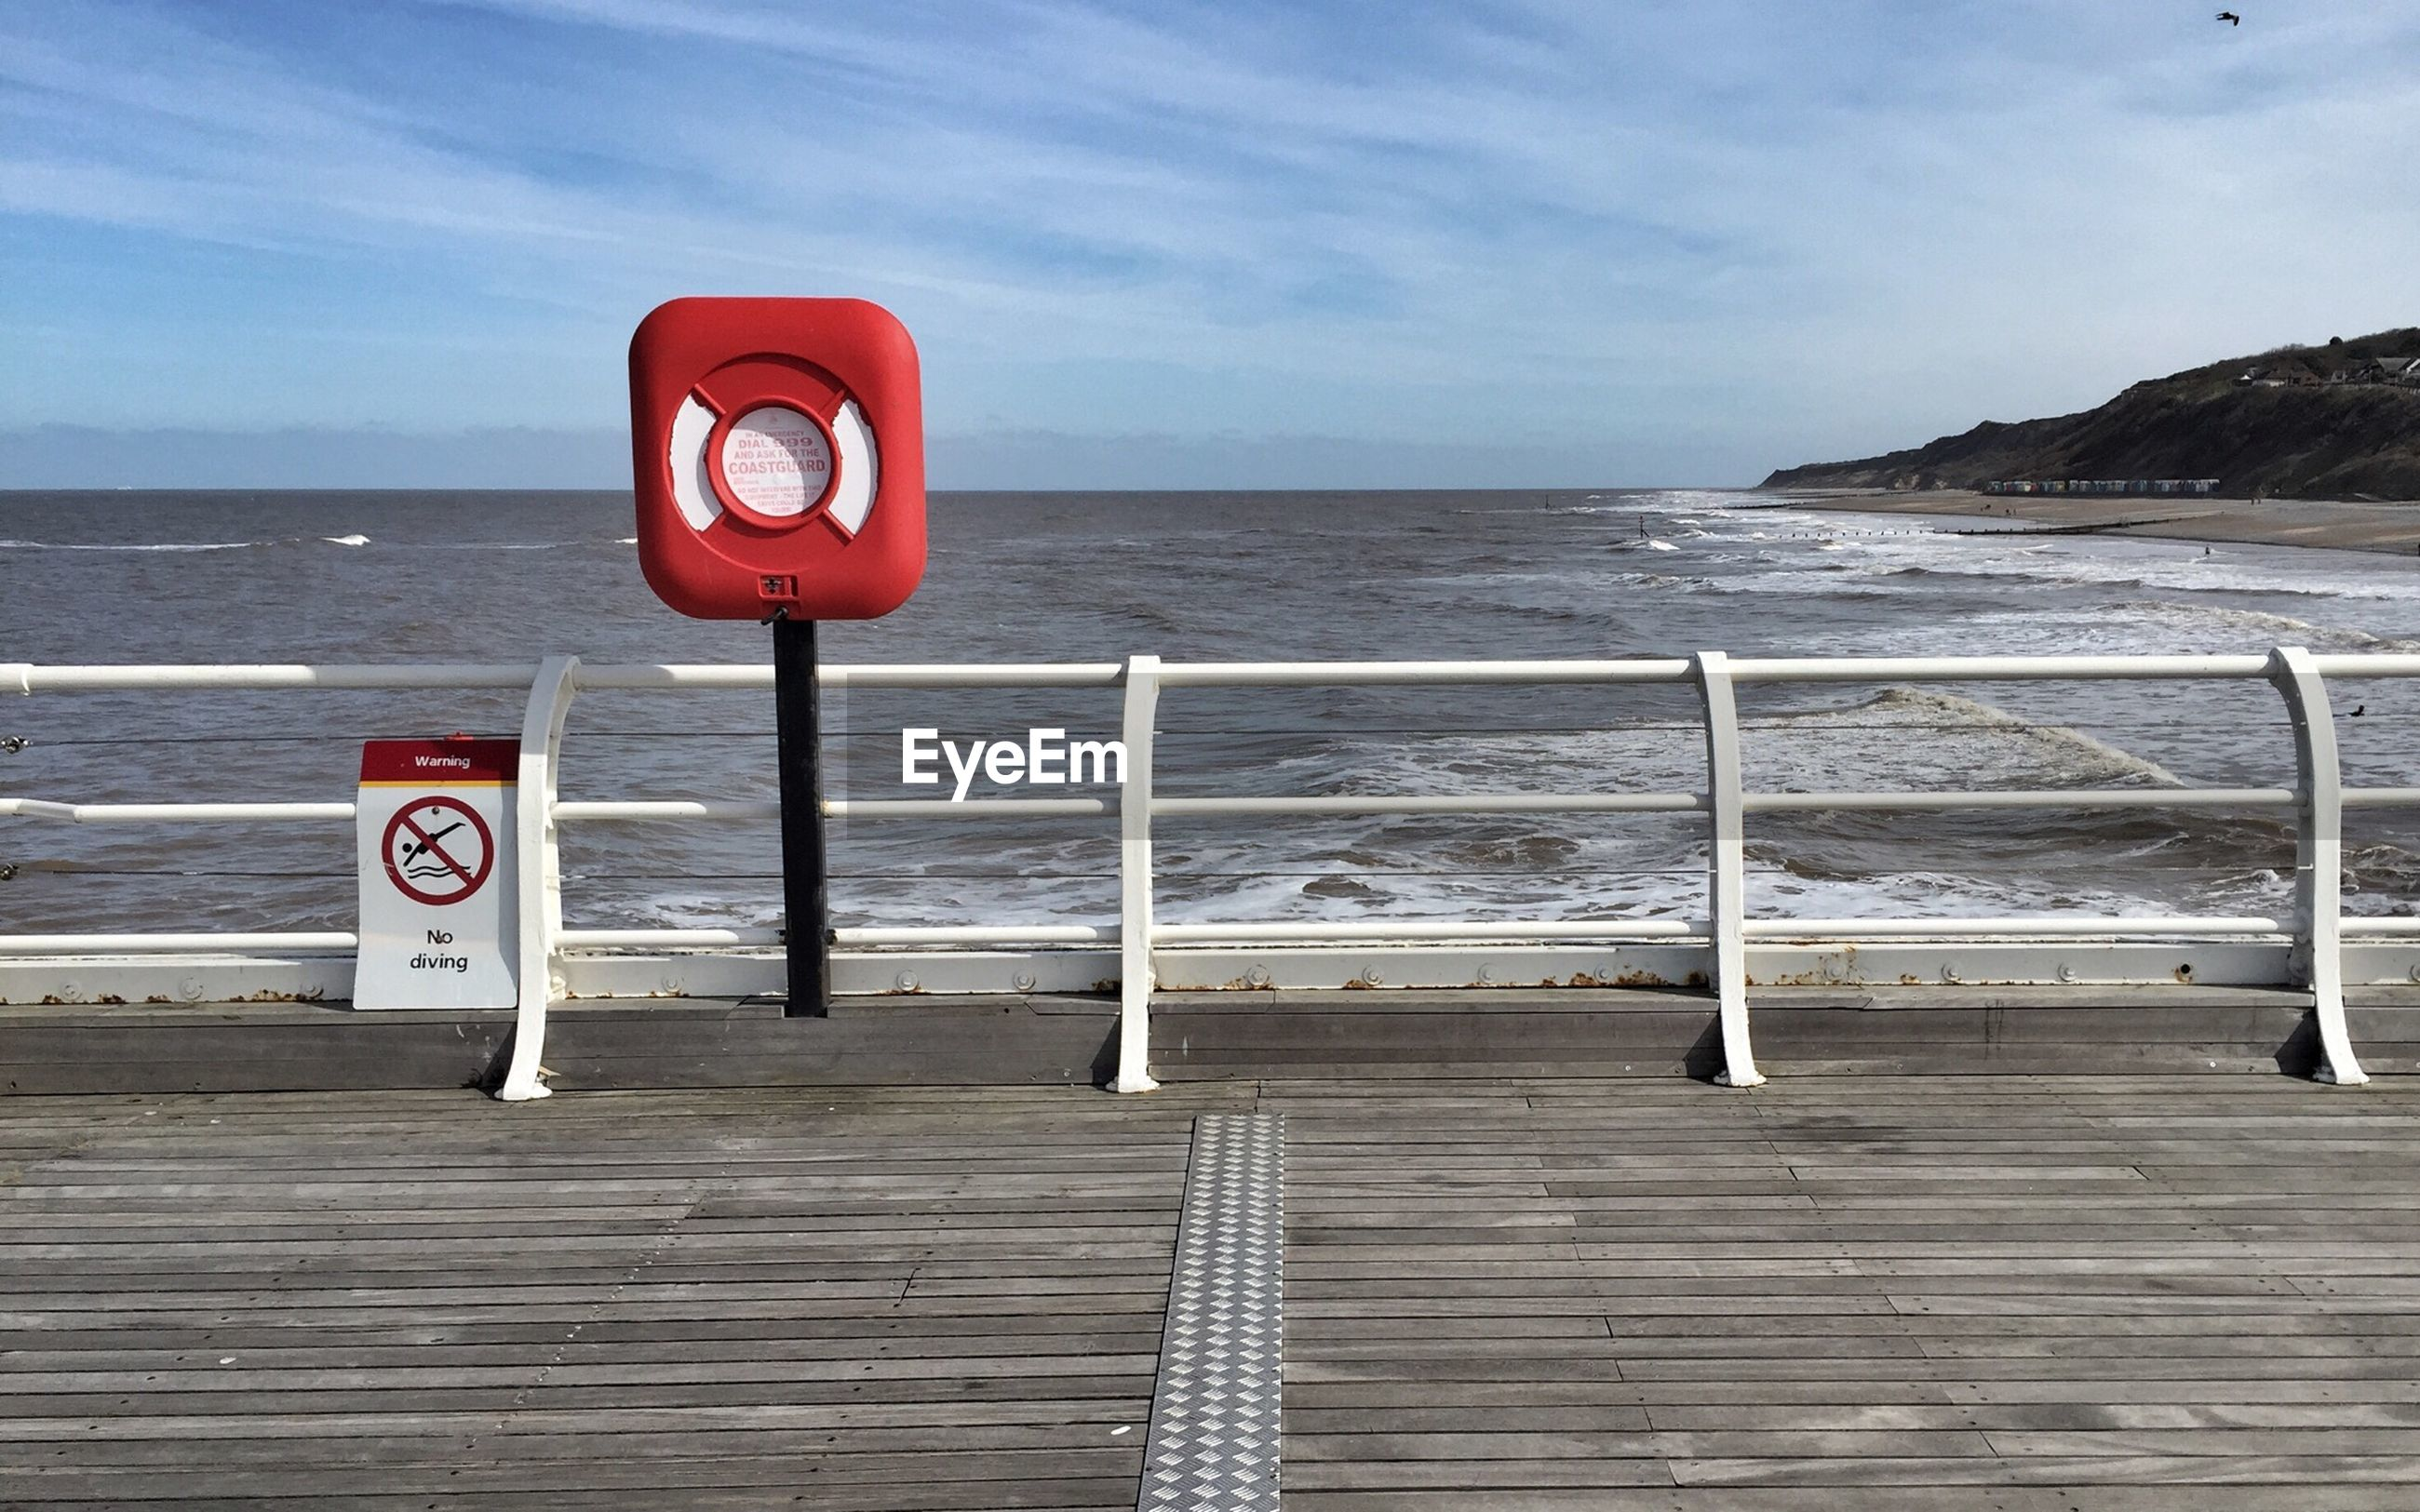 sea, horizon over water, text, water, western script, communication, sky, beach, sign, warning sign, information sign, guidance, red, shore, tranquility, tranquil scene, sand, safety, road sign, nature